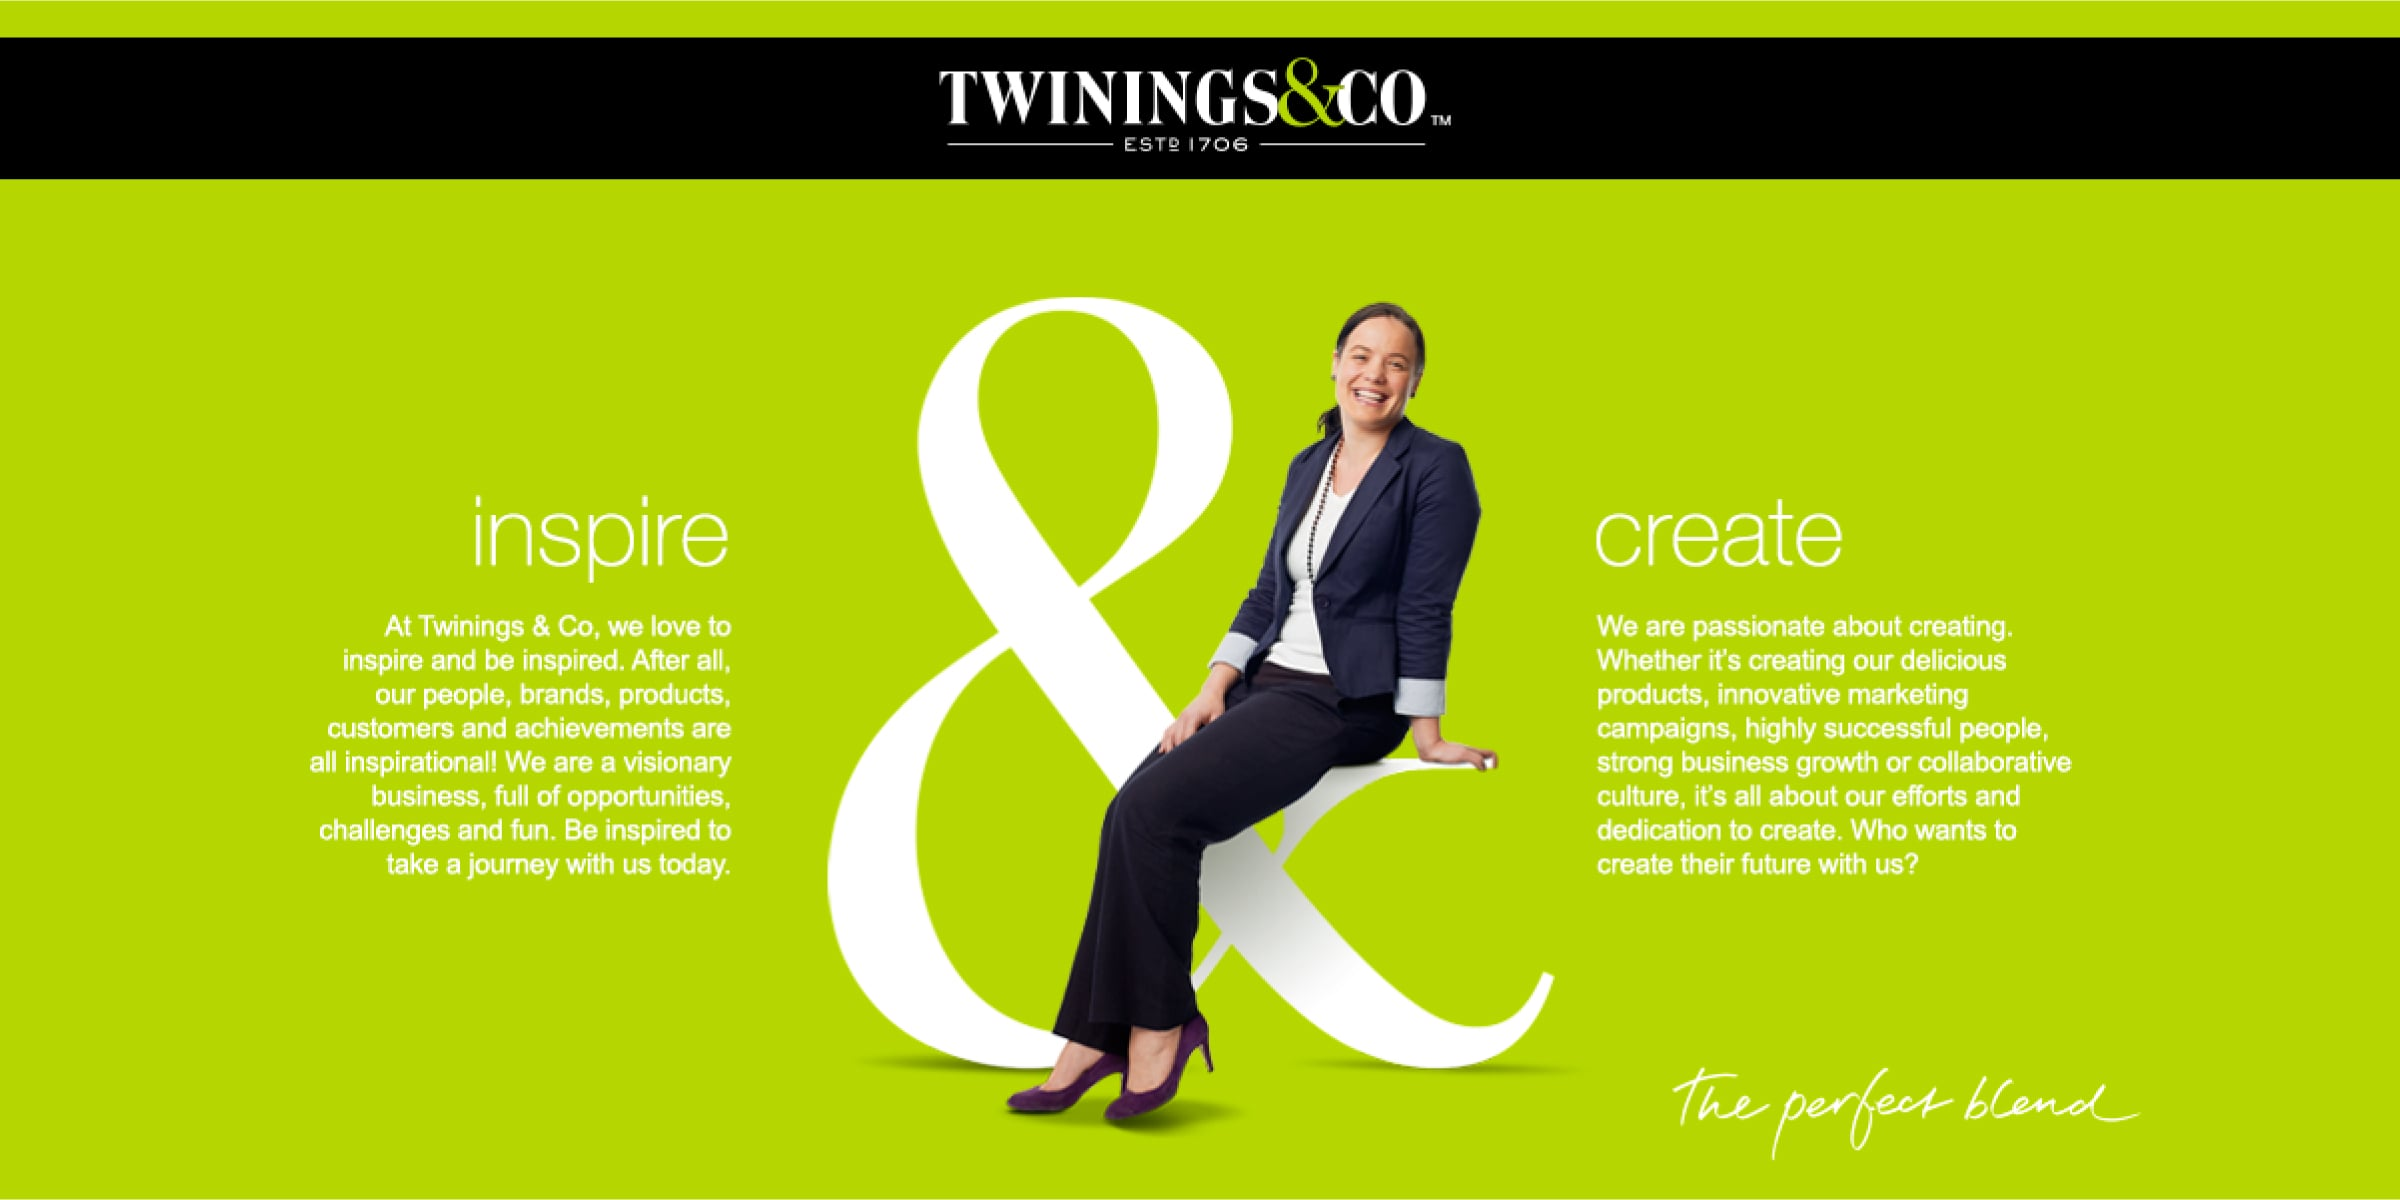 Davidson Branding Twinings & Co FMCG Digital Brand Strategy Rebrand